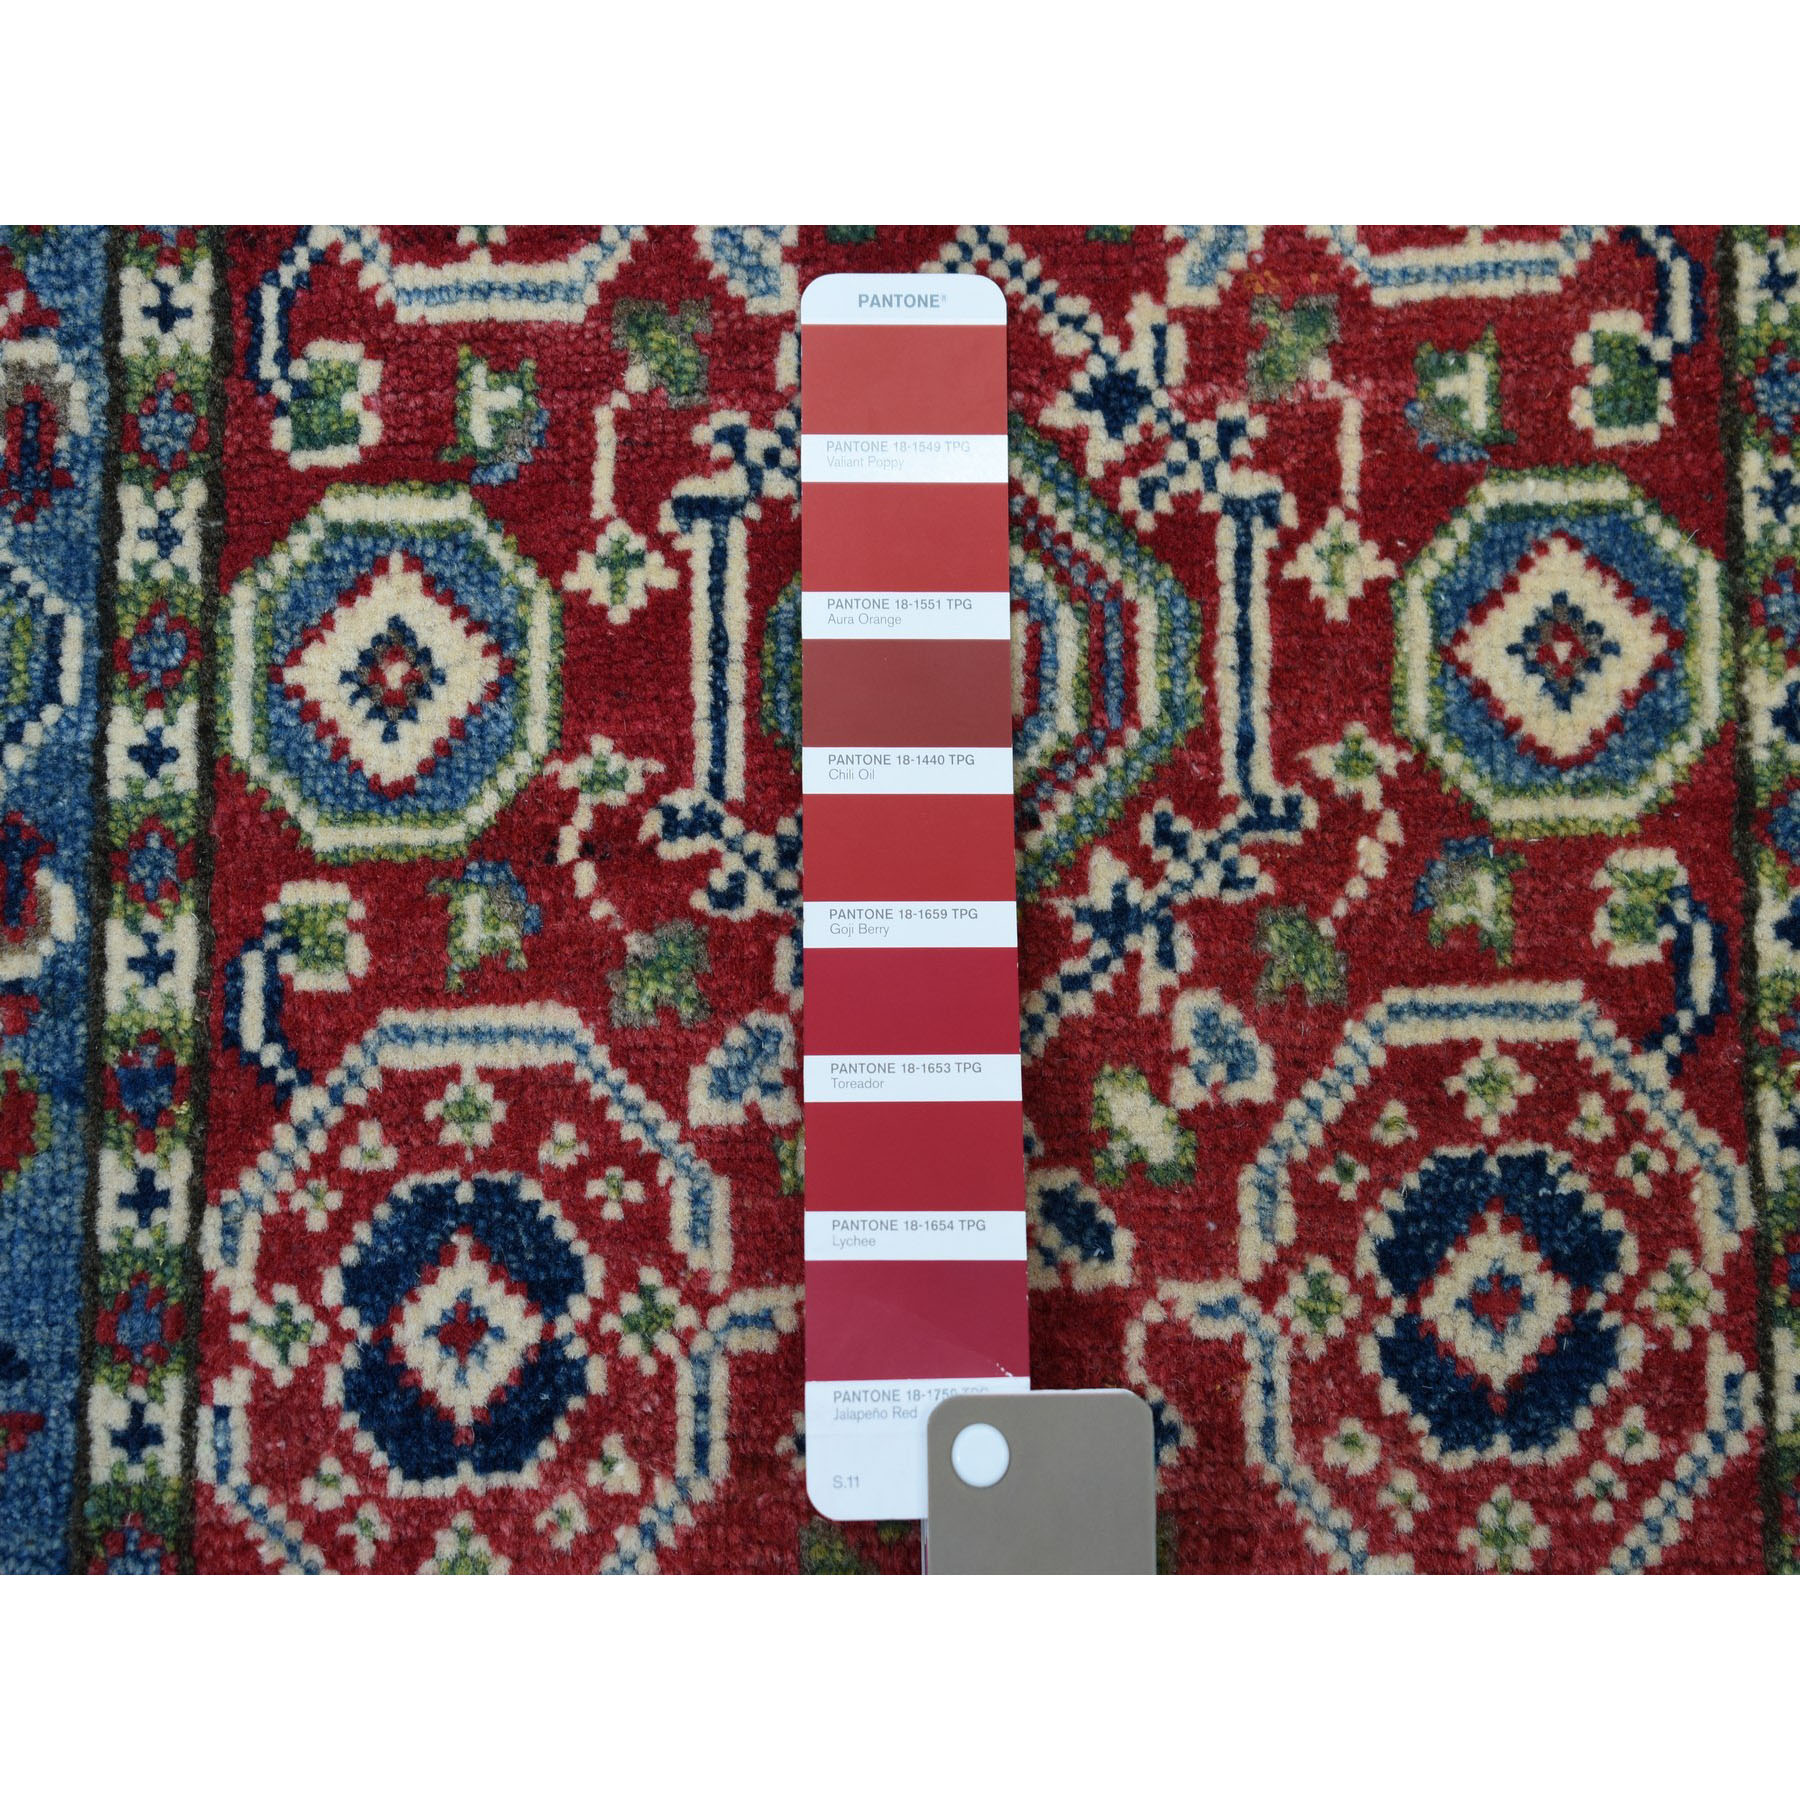 2-x3- Red Tribal and Geometric Design Kazak Pure Wool Hand-Knotted Oriental Rug